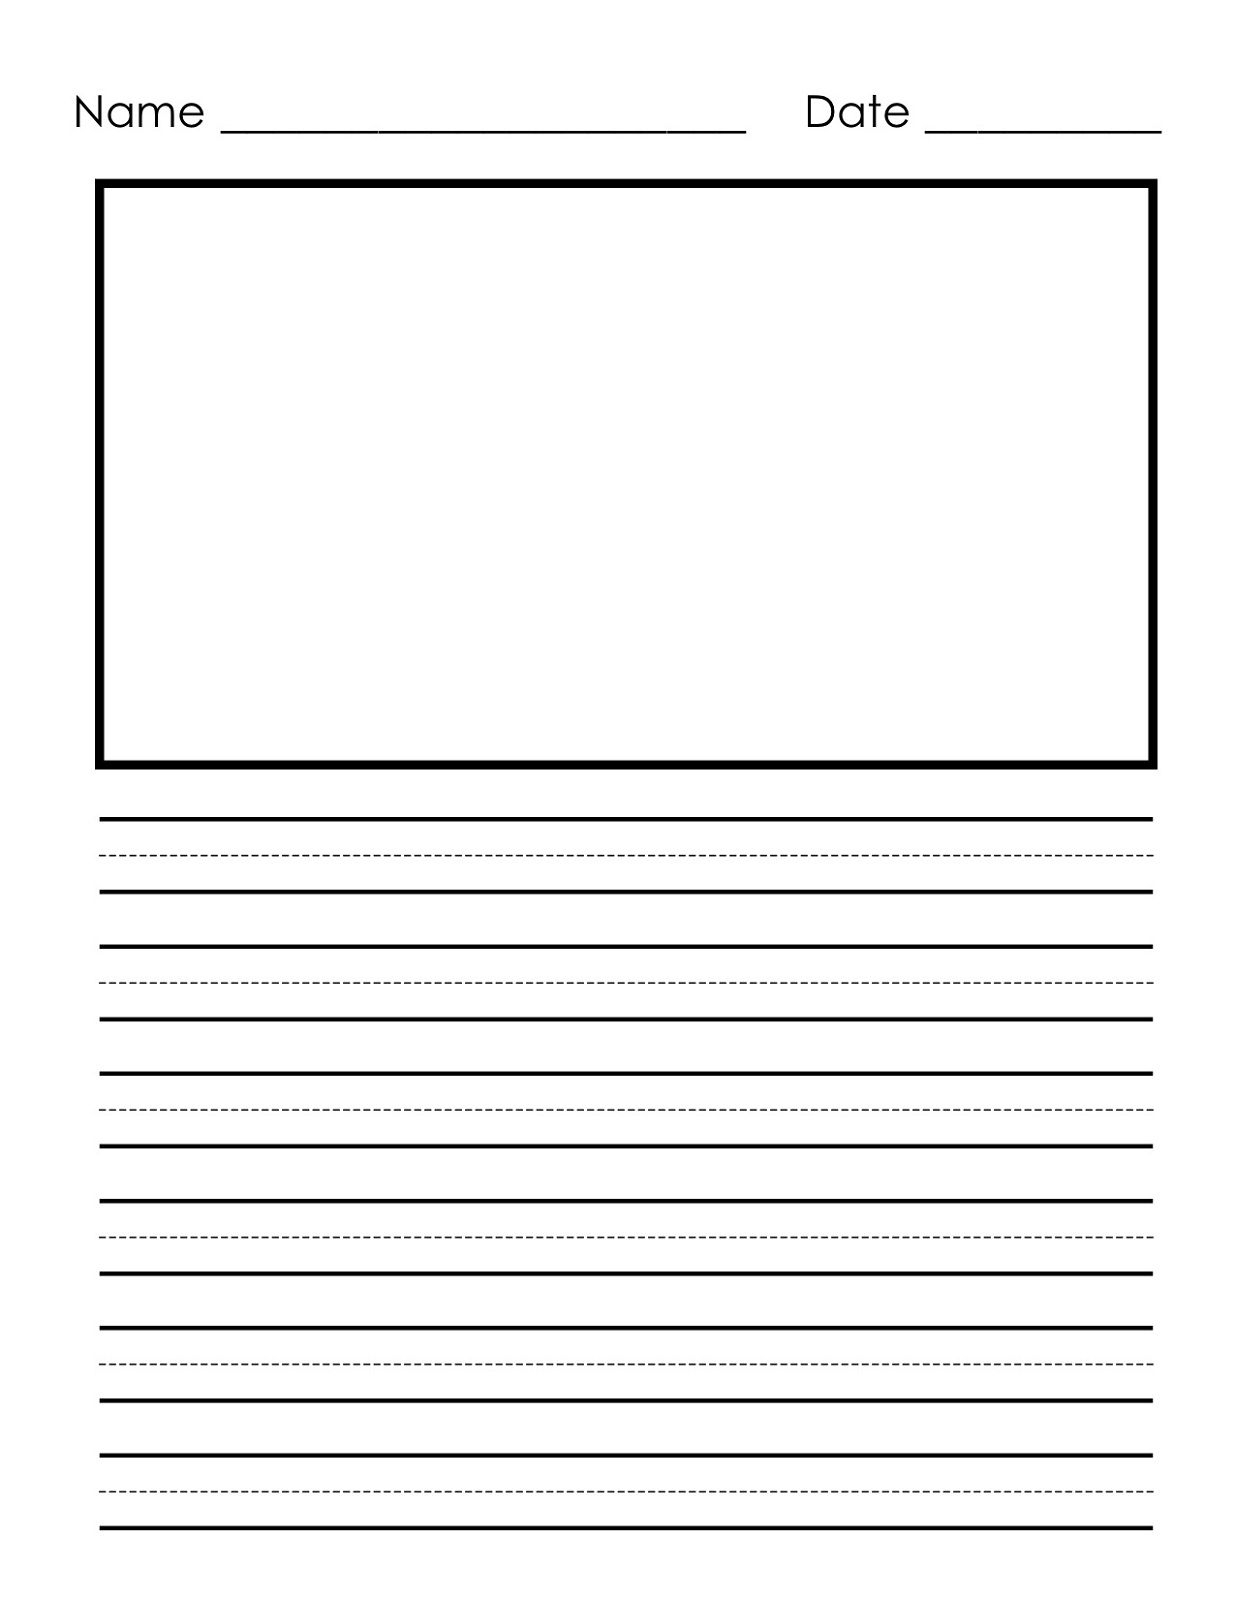 Writing Paper Printable For Children | Notebook Paper Templates - Free Printable Kindergarten Lined Paper Template